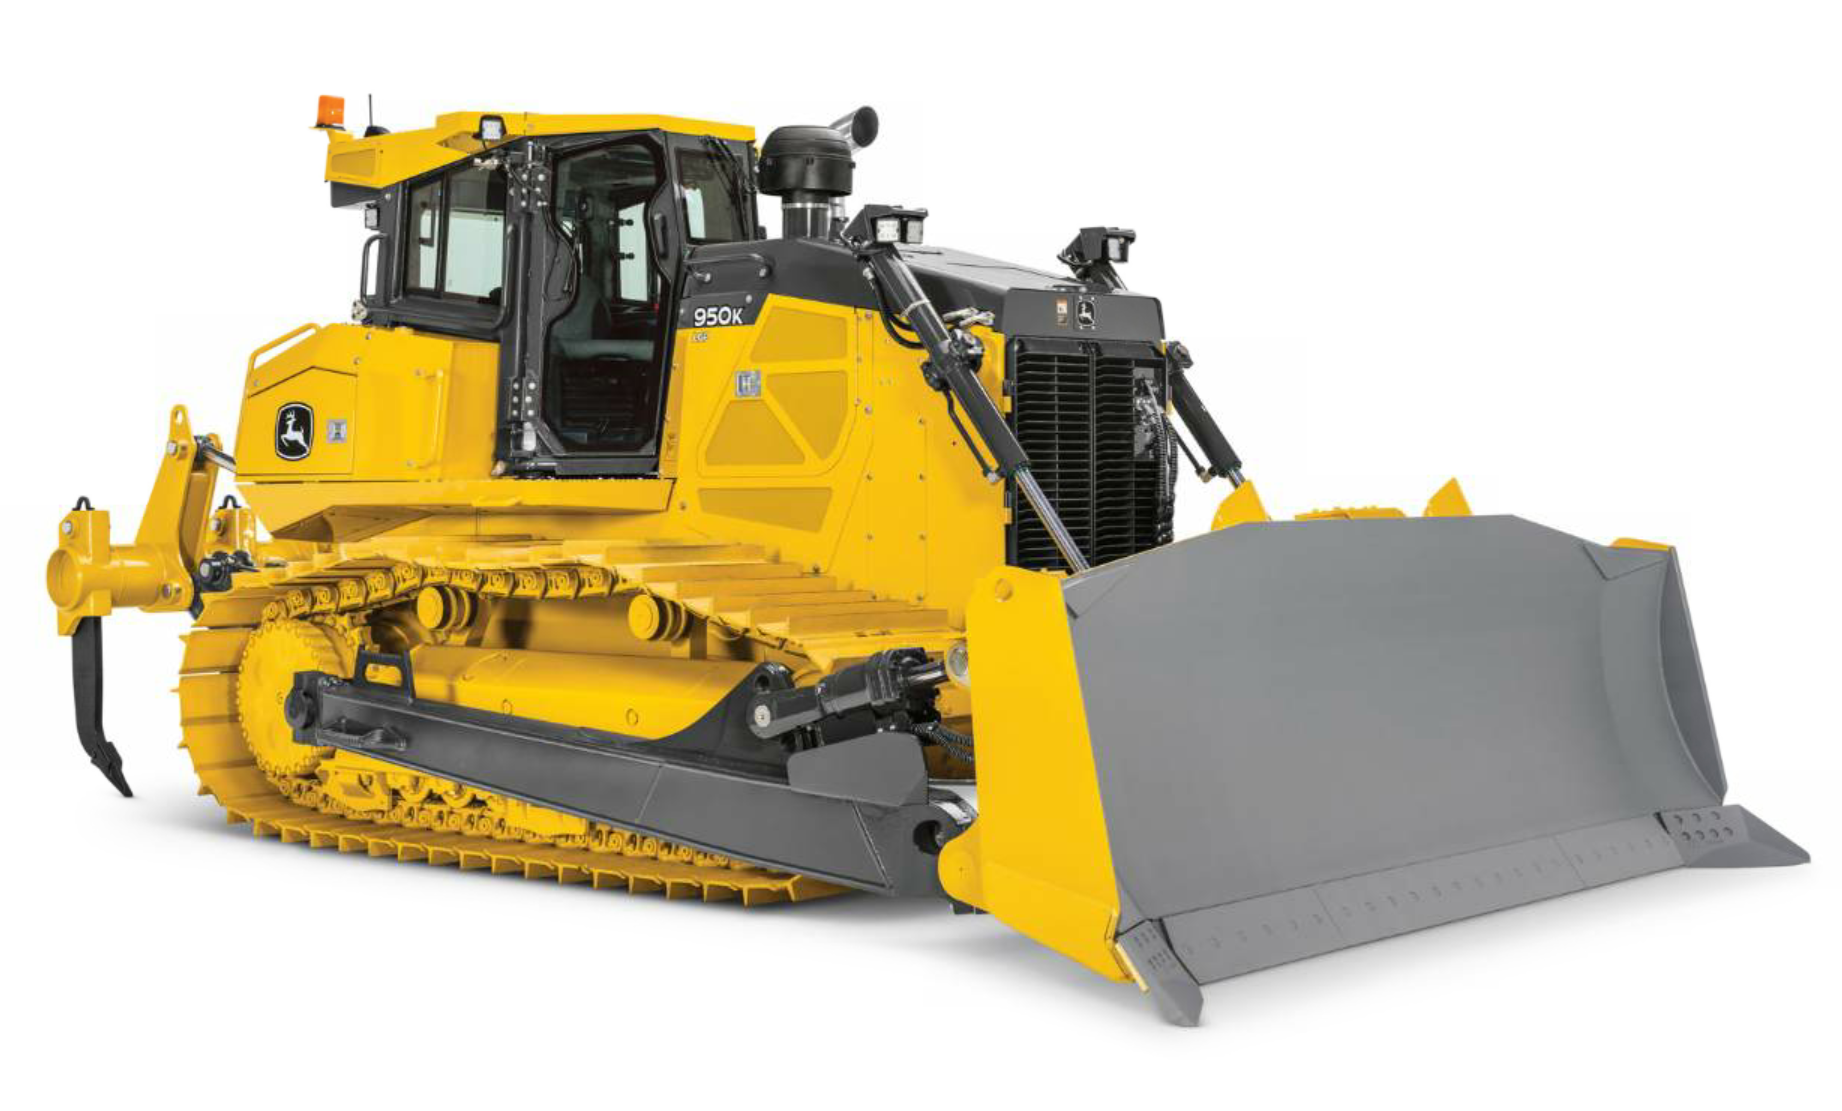 The 950K PAT crawler dozer from John Deere weighs in at nearly 80,000 pounds.